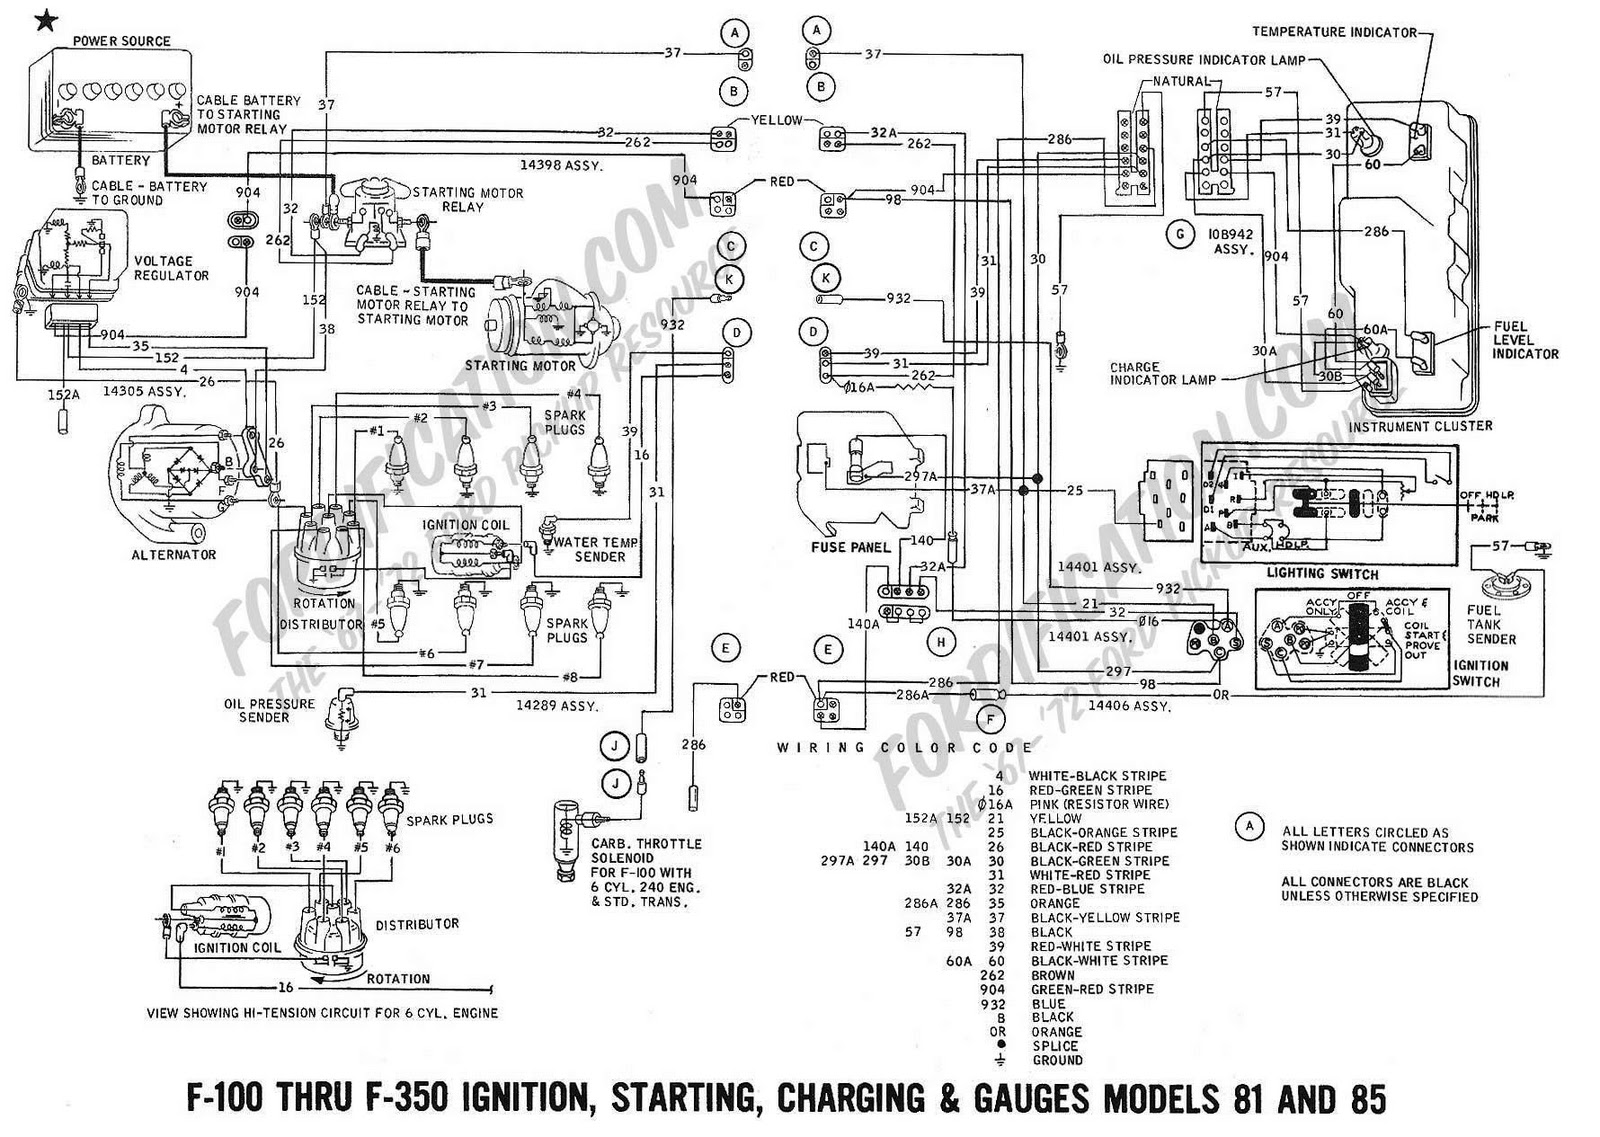 2005 Yamaha Dt125x Wiring Diagram together with Mopar performance dodge truck magnum interior furthermore Dodge Ram 2500 Power Window Wiring Diagram also ShowAssembly as well 1965 Ford F100 Dash Gauges Wiring. on dodge oem wiring harness